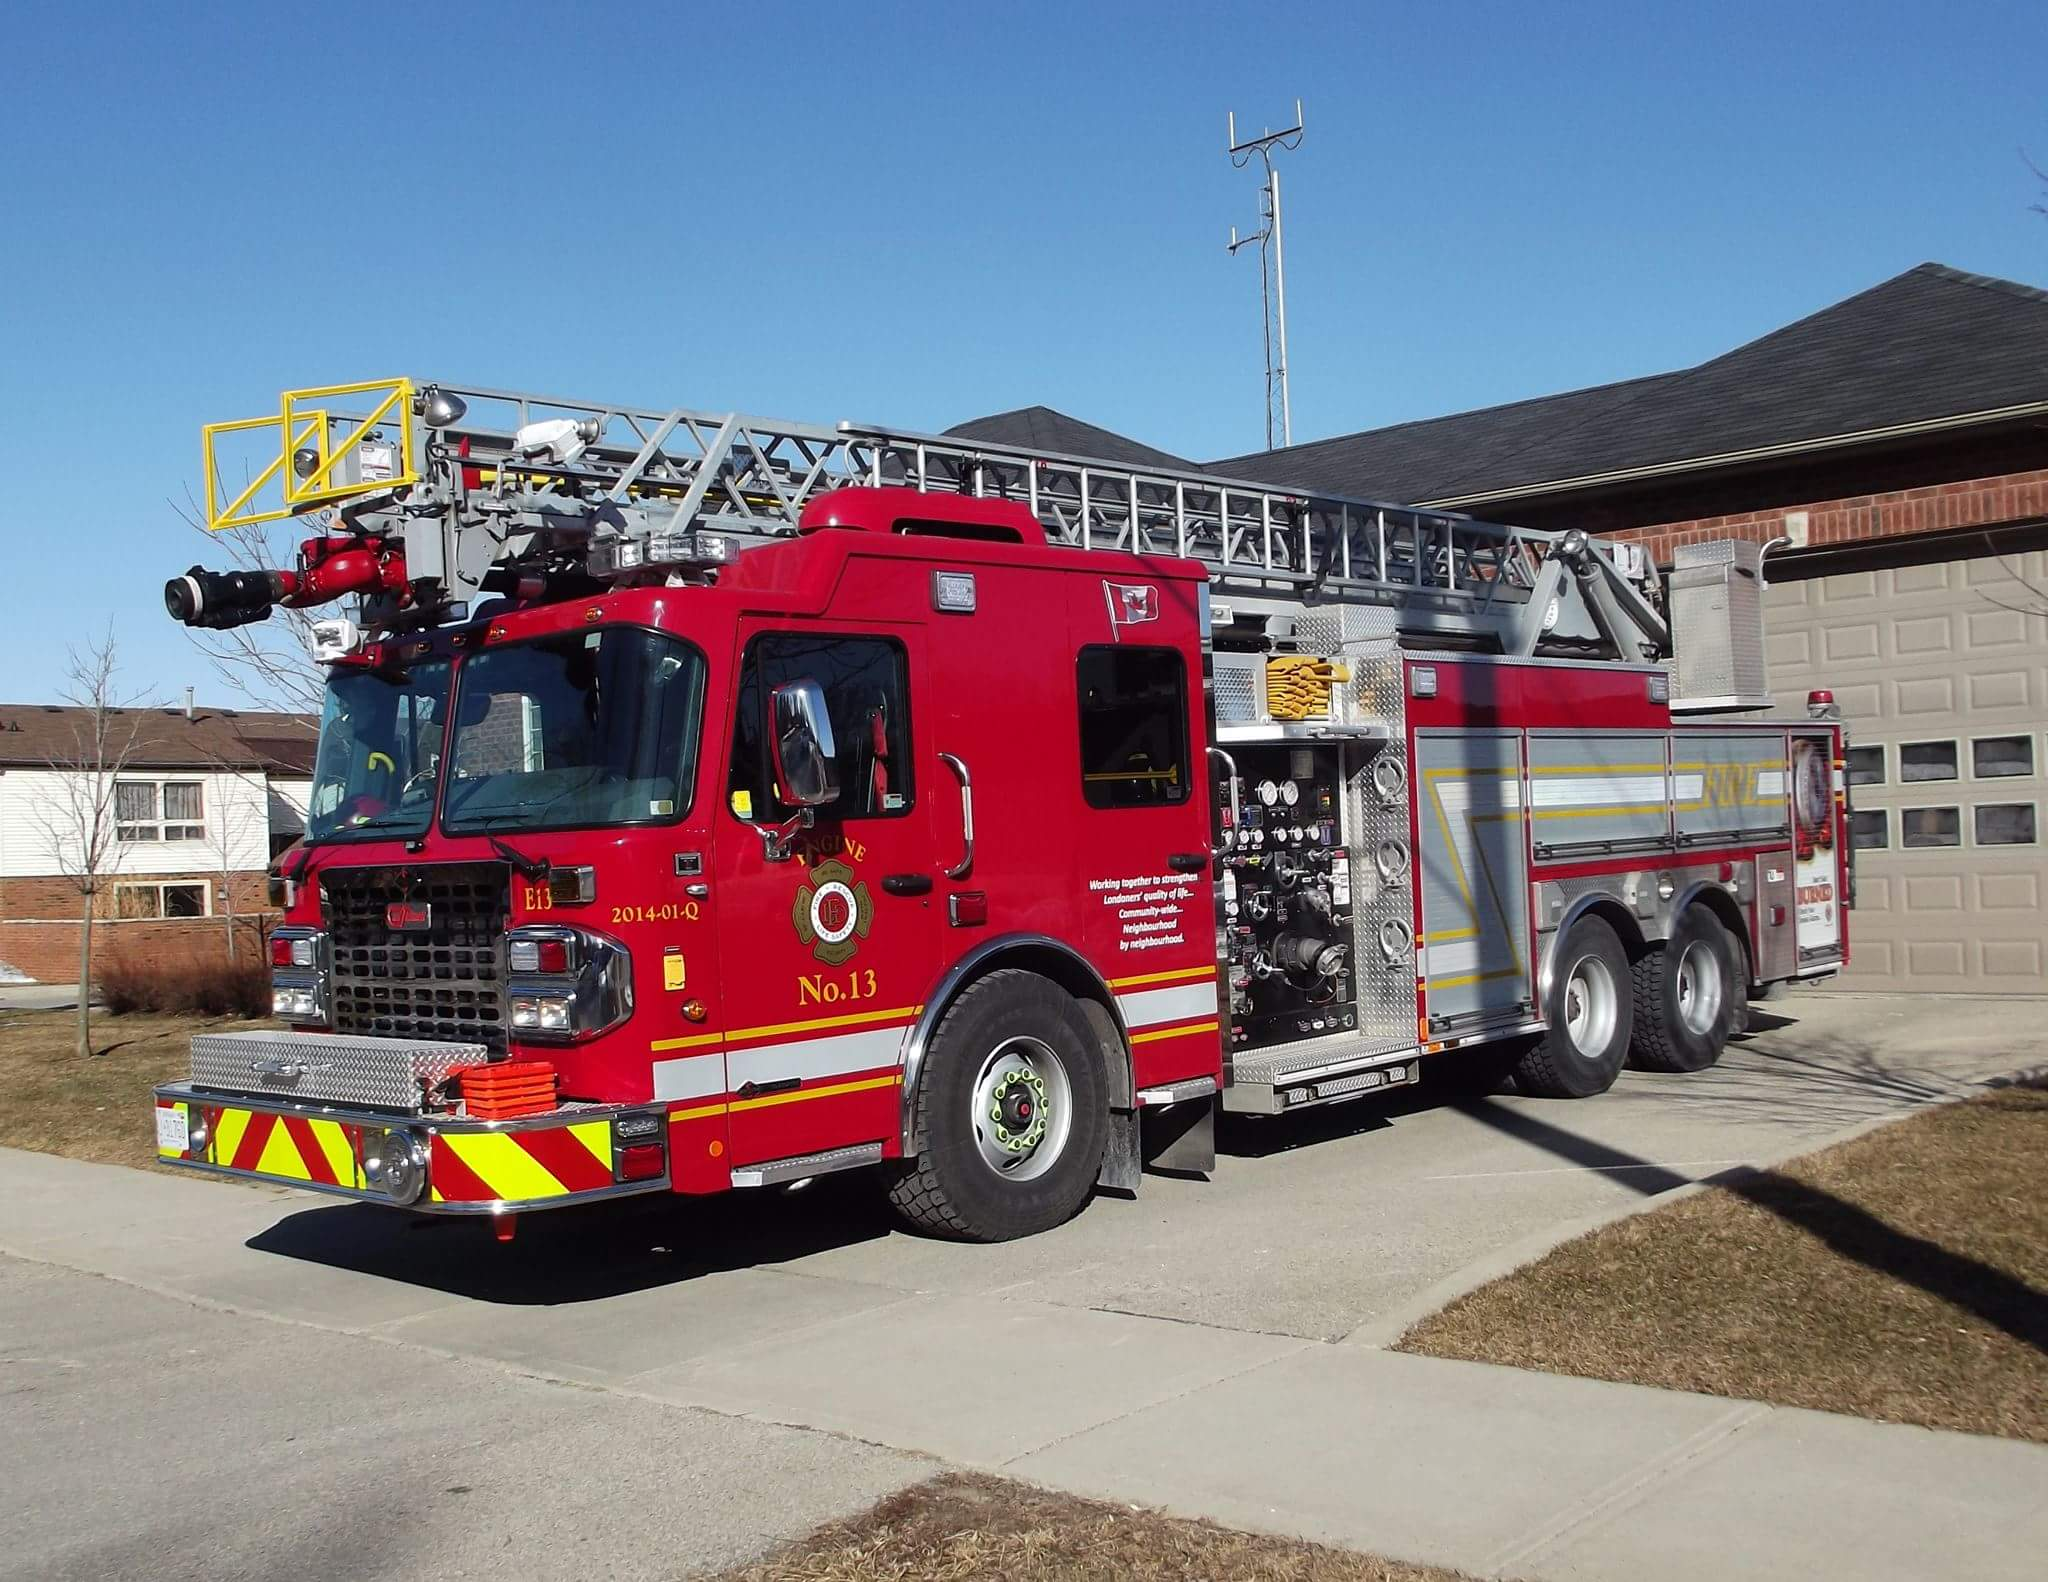 Full driver's side photo of Engine 13